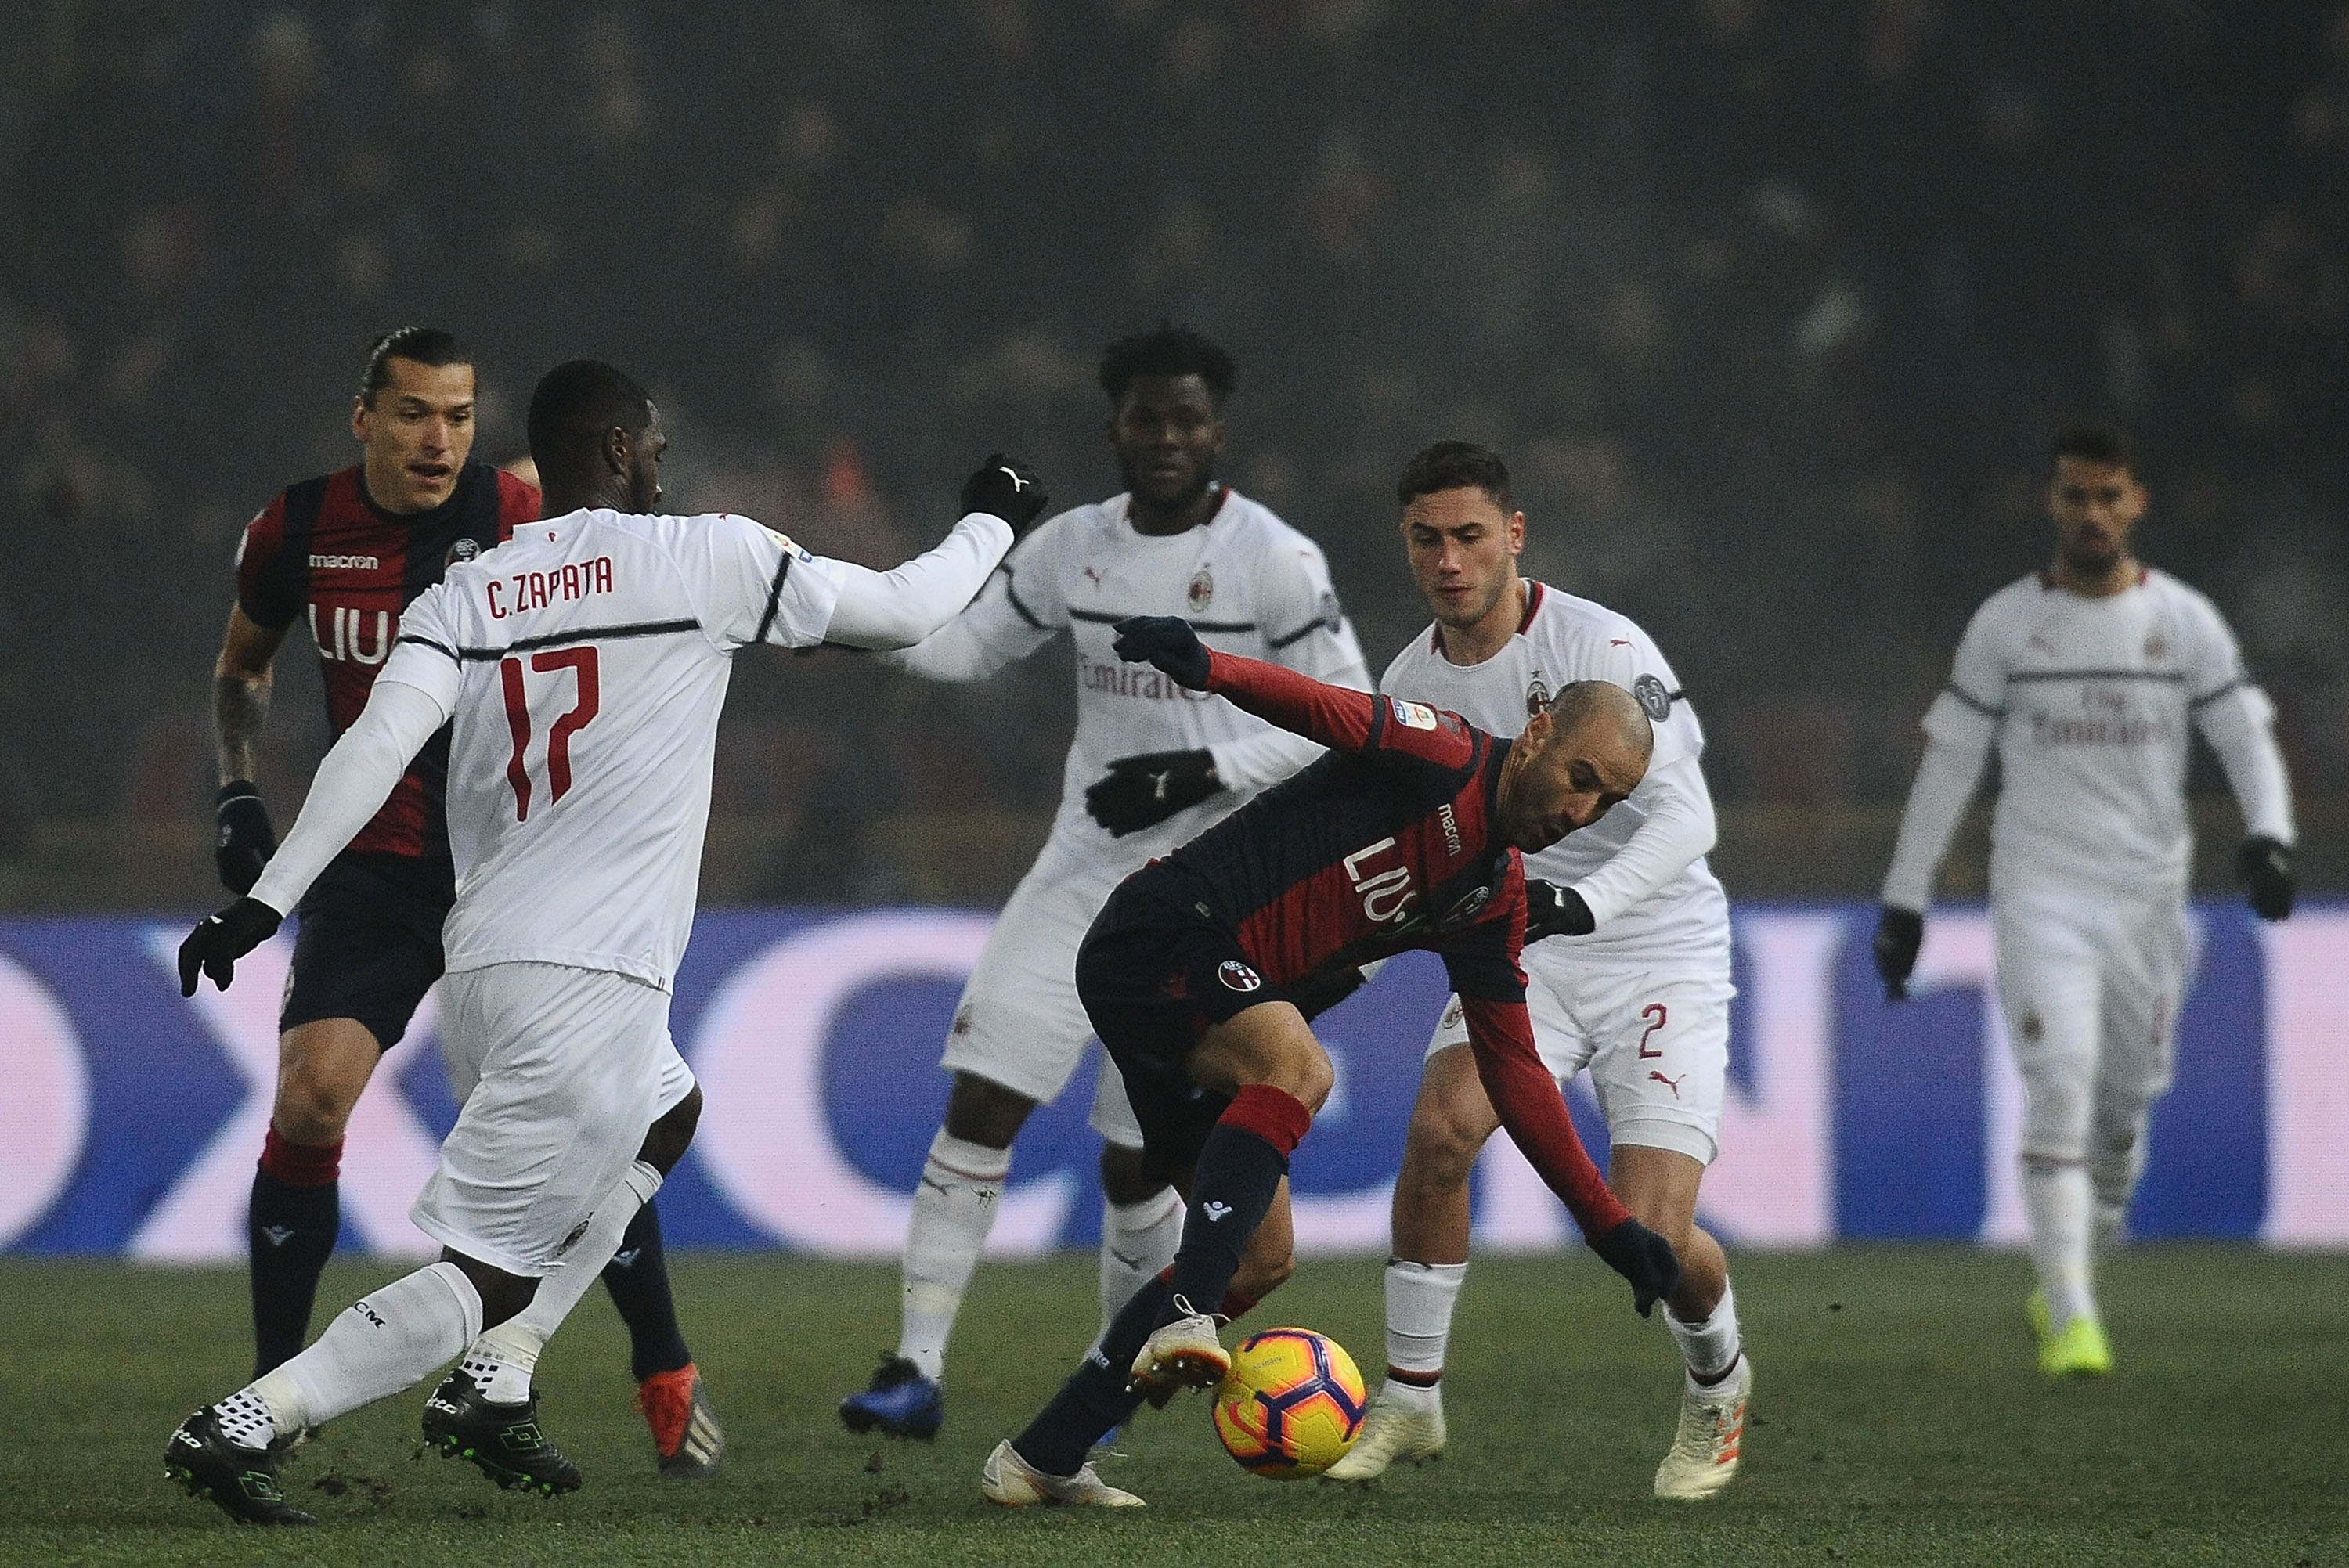 AC Milan midfielder Paqueta banned for slapping referee